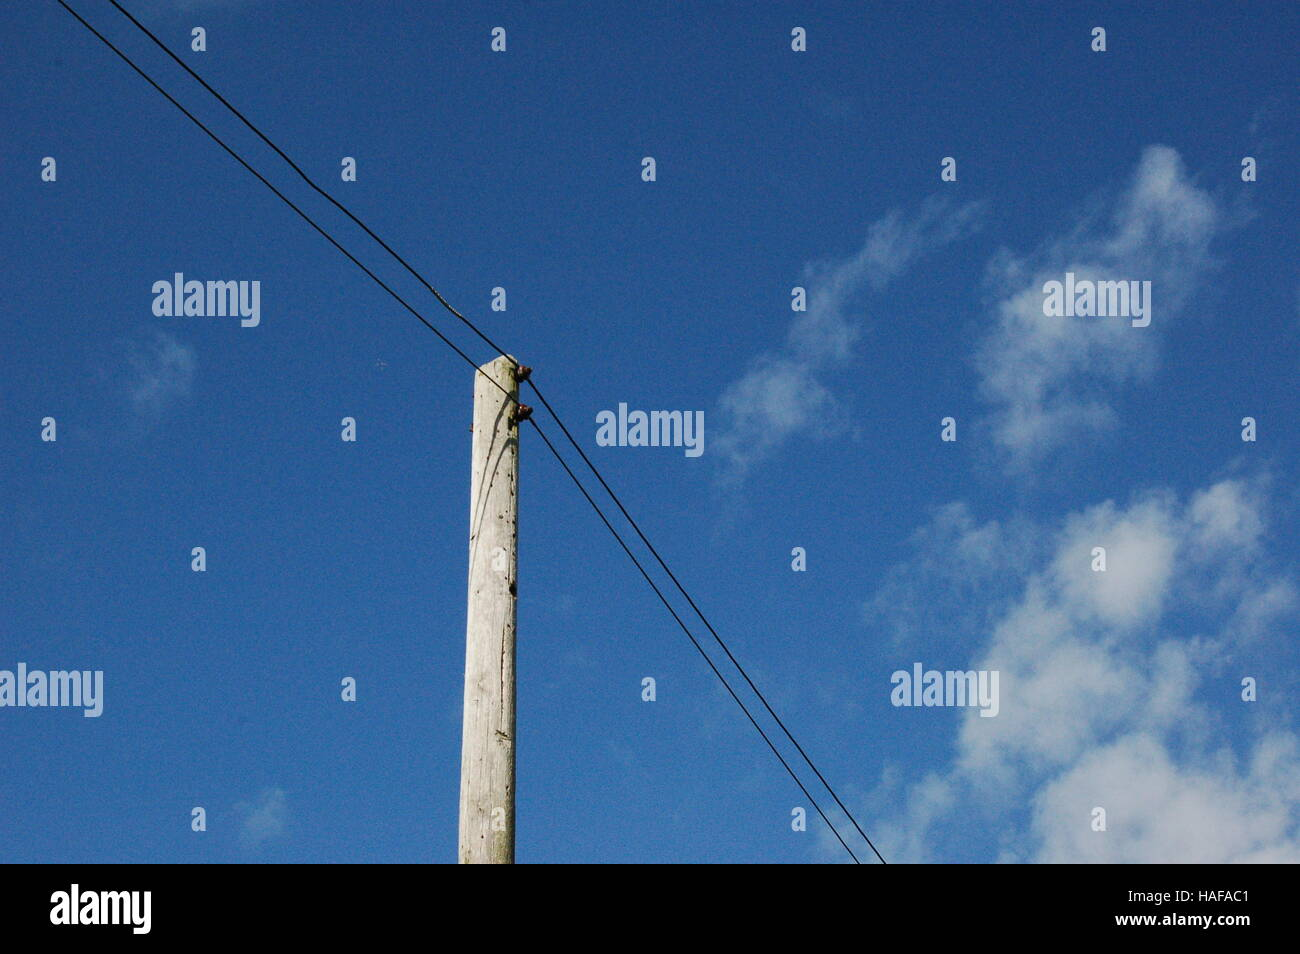 simple lamppost with wires - Stock Image